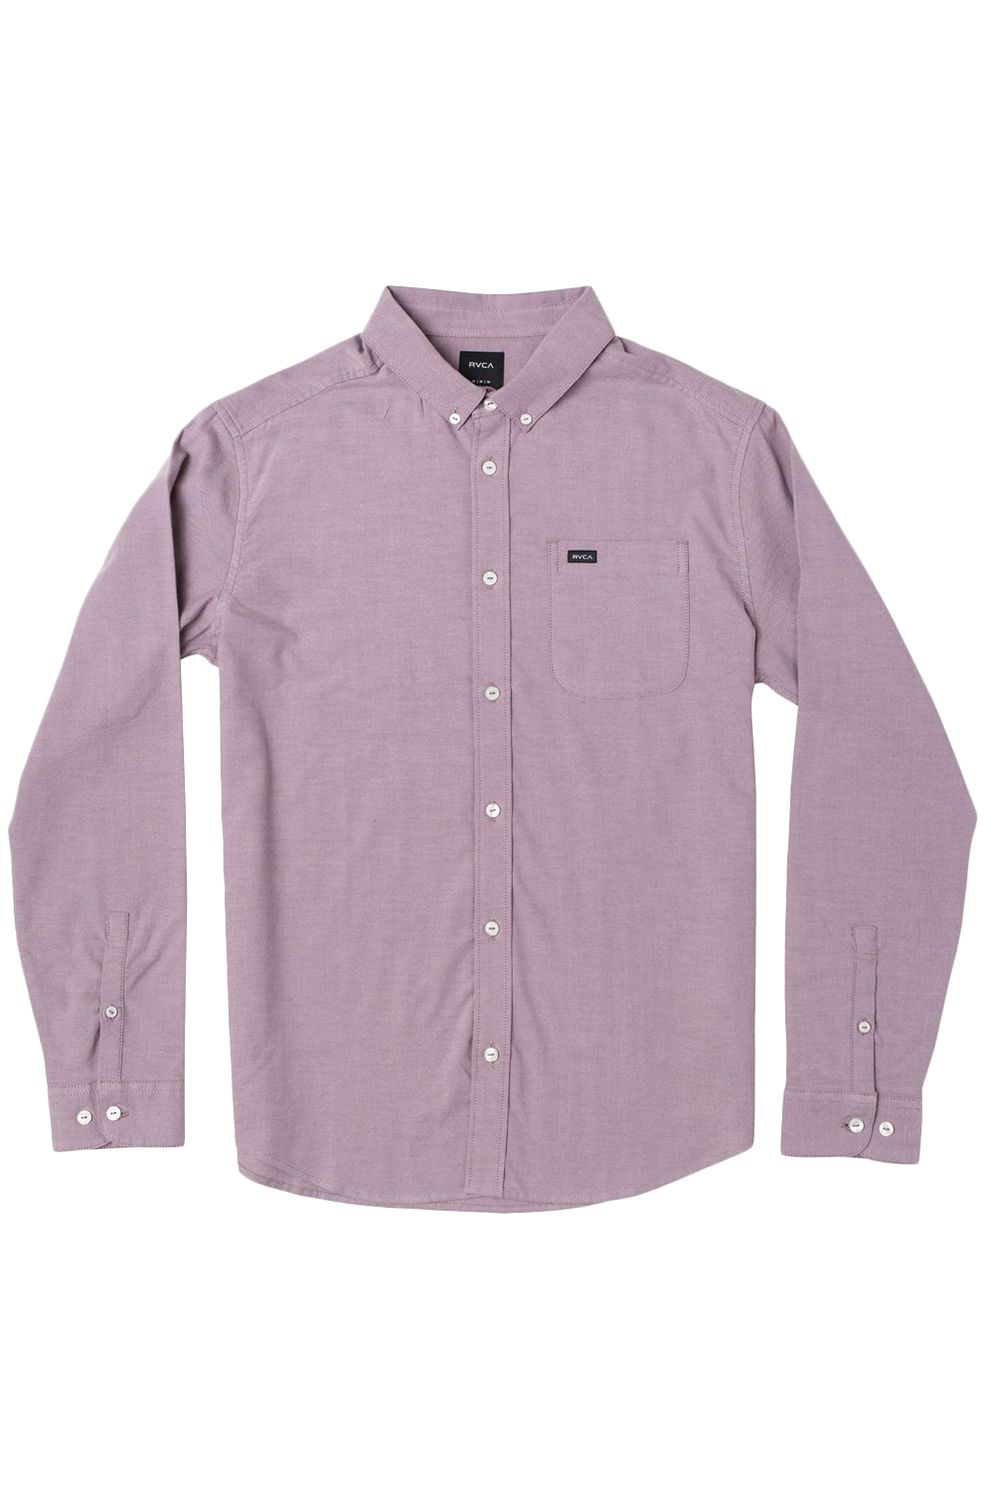 RVCA Shirt THATLL DO STRETCH LS Merlot